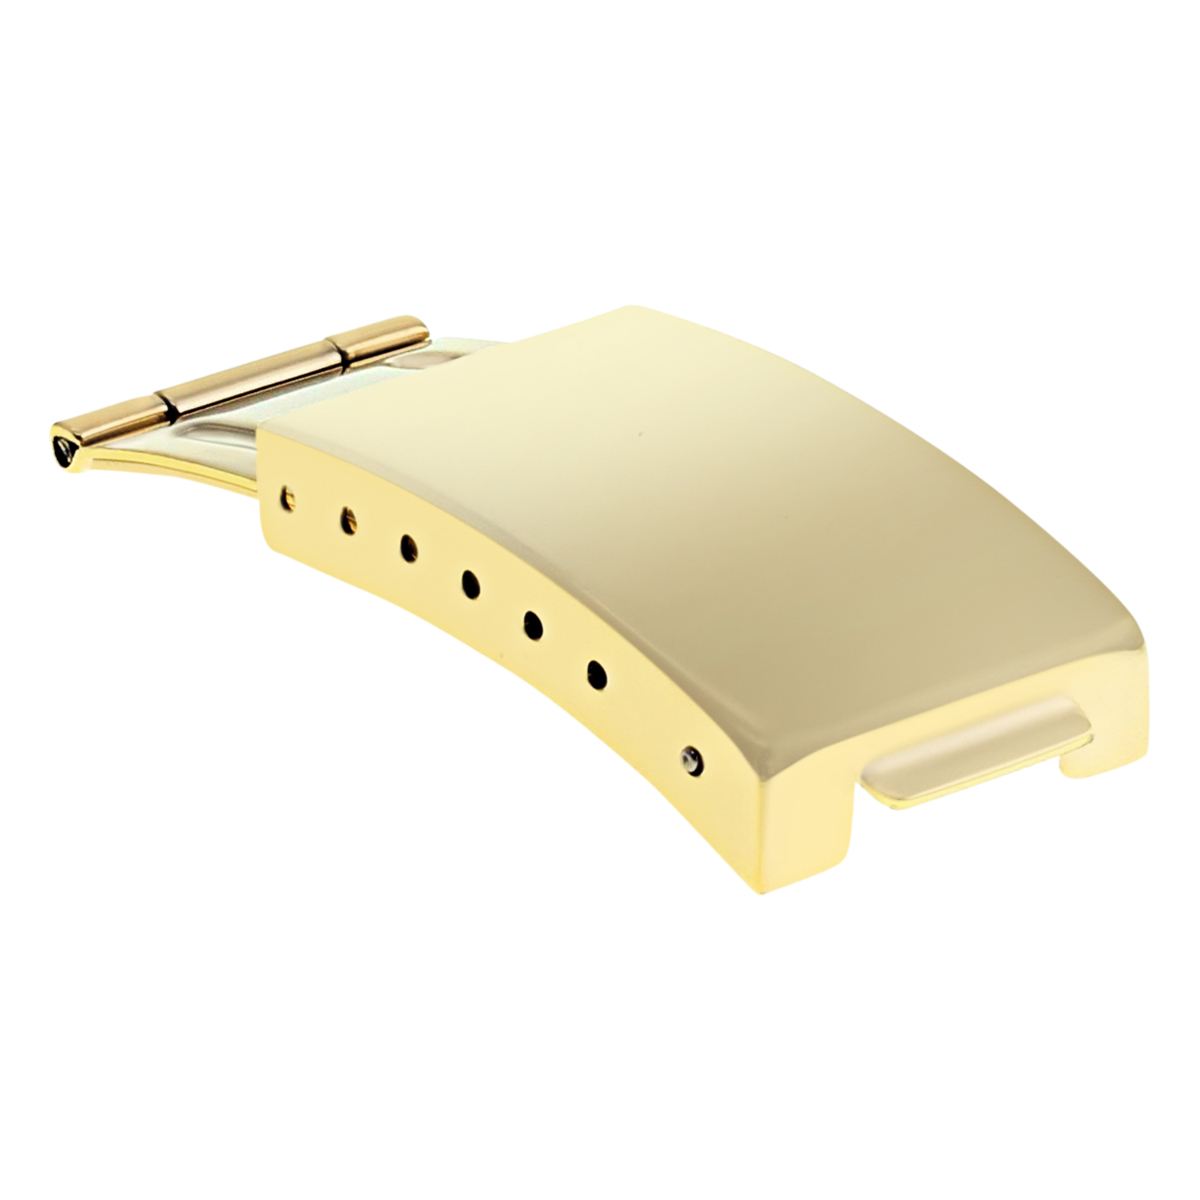 Gold Bracelet Clasp For Mens Rolex Oyster Or Jubilee Watch Band 20mm